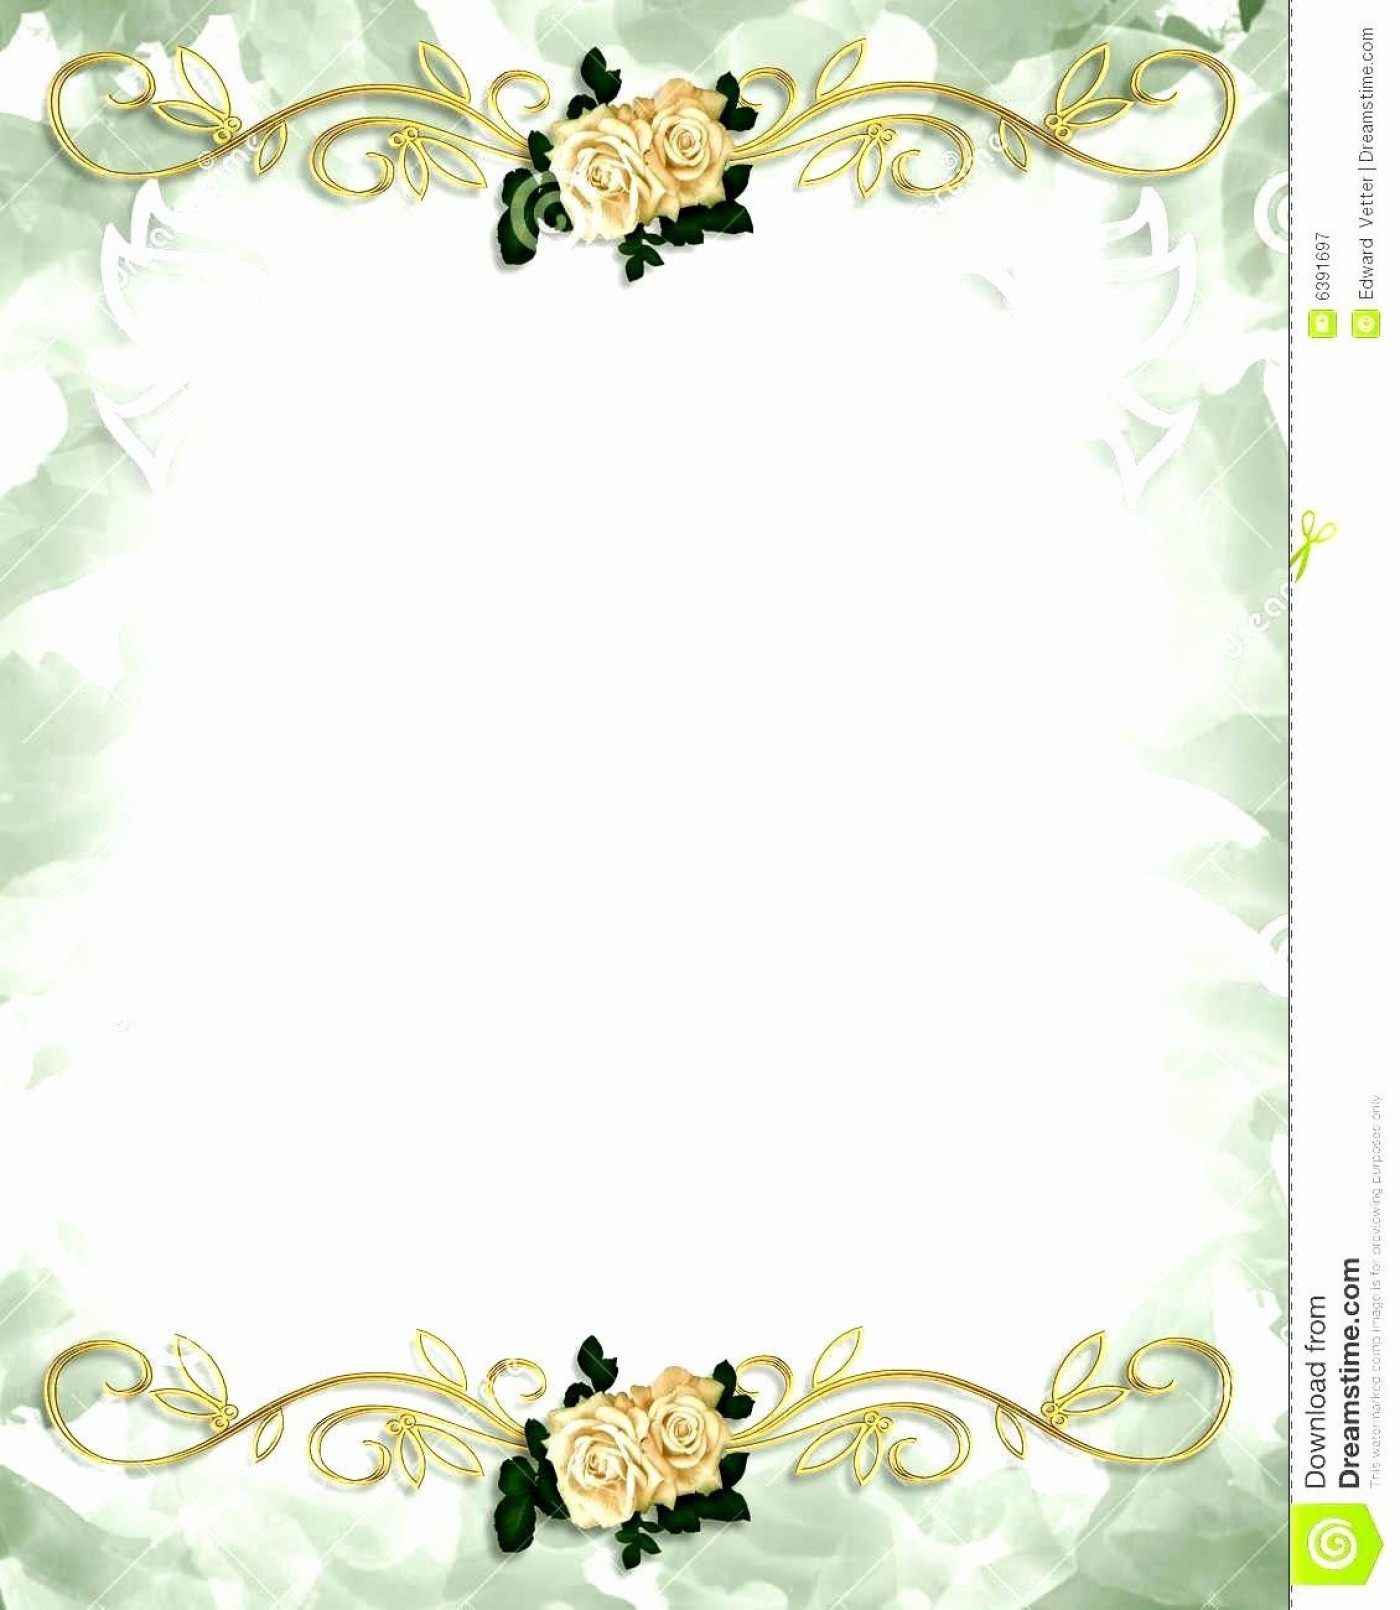 001 Top Free Download Invitation Card Template Highest Clarity  Wedding Design Software For Pc Psd1400